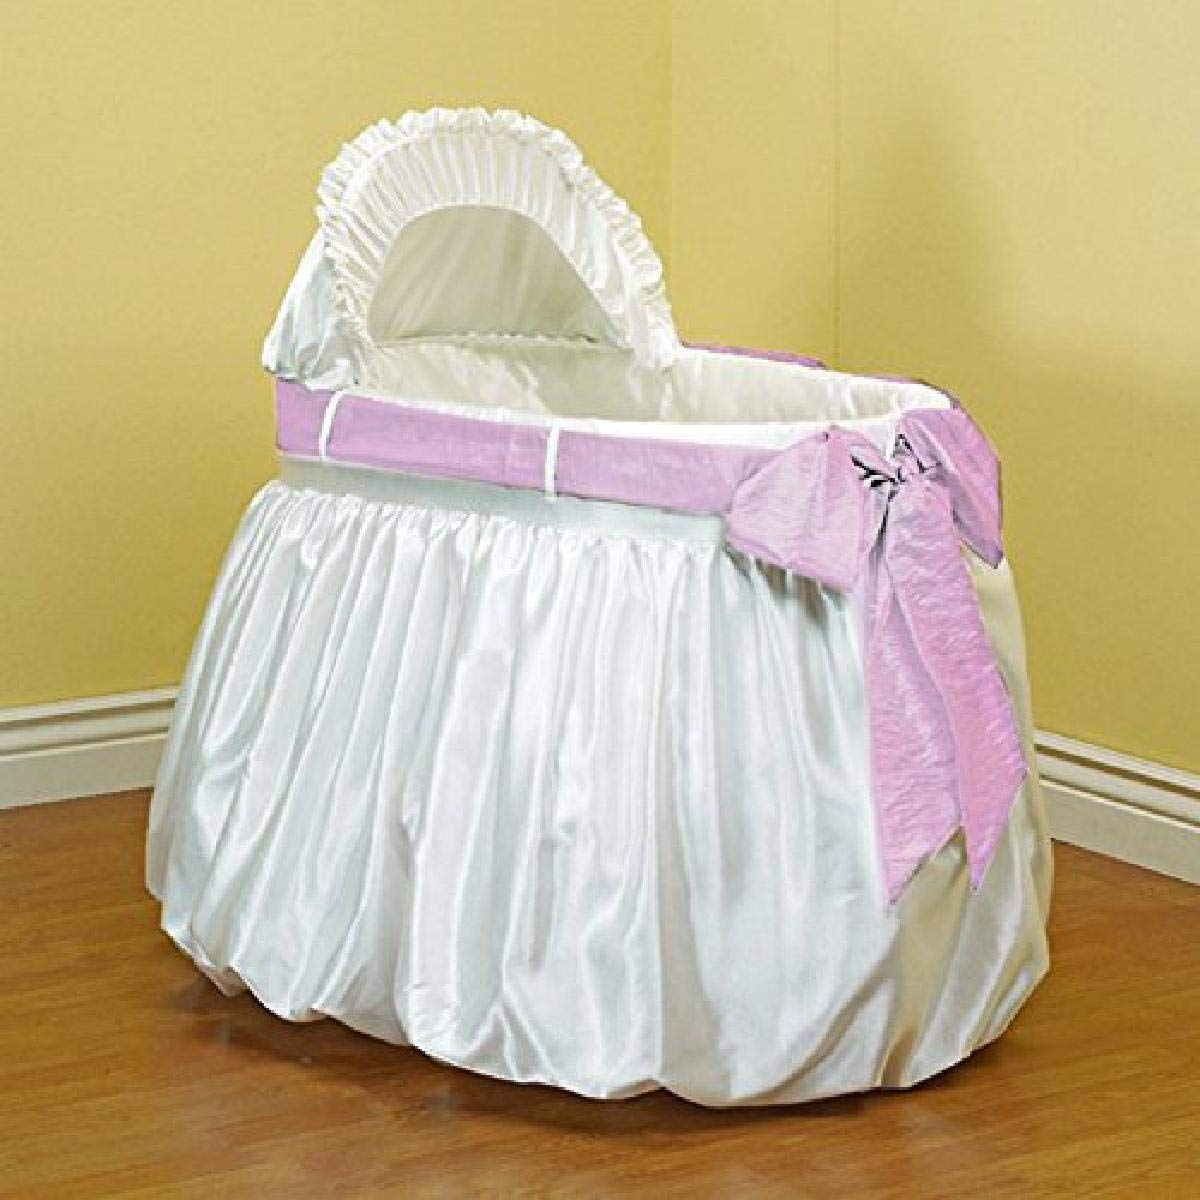 Baby Doll Bedding Shantung Bubble and Crushed Belt Bassinet Set